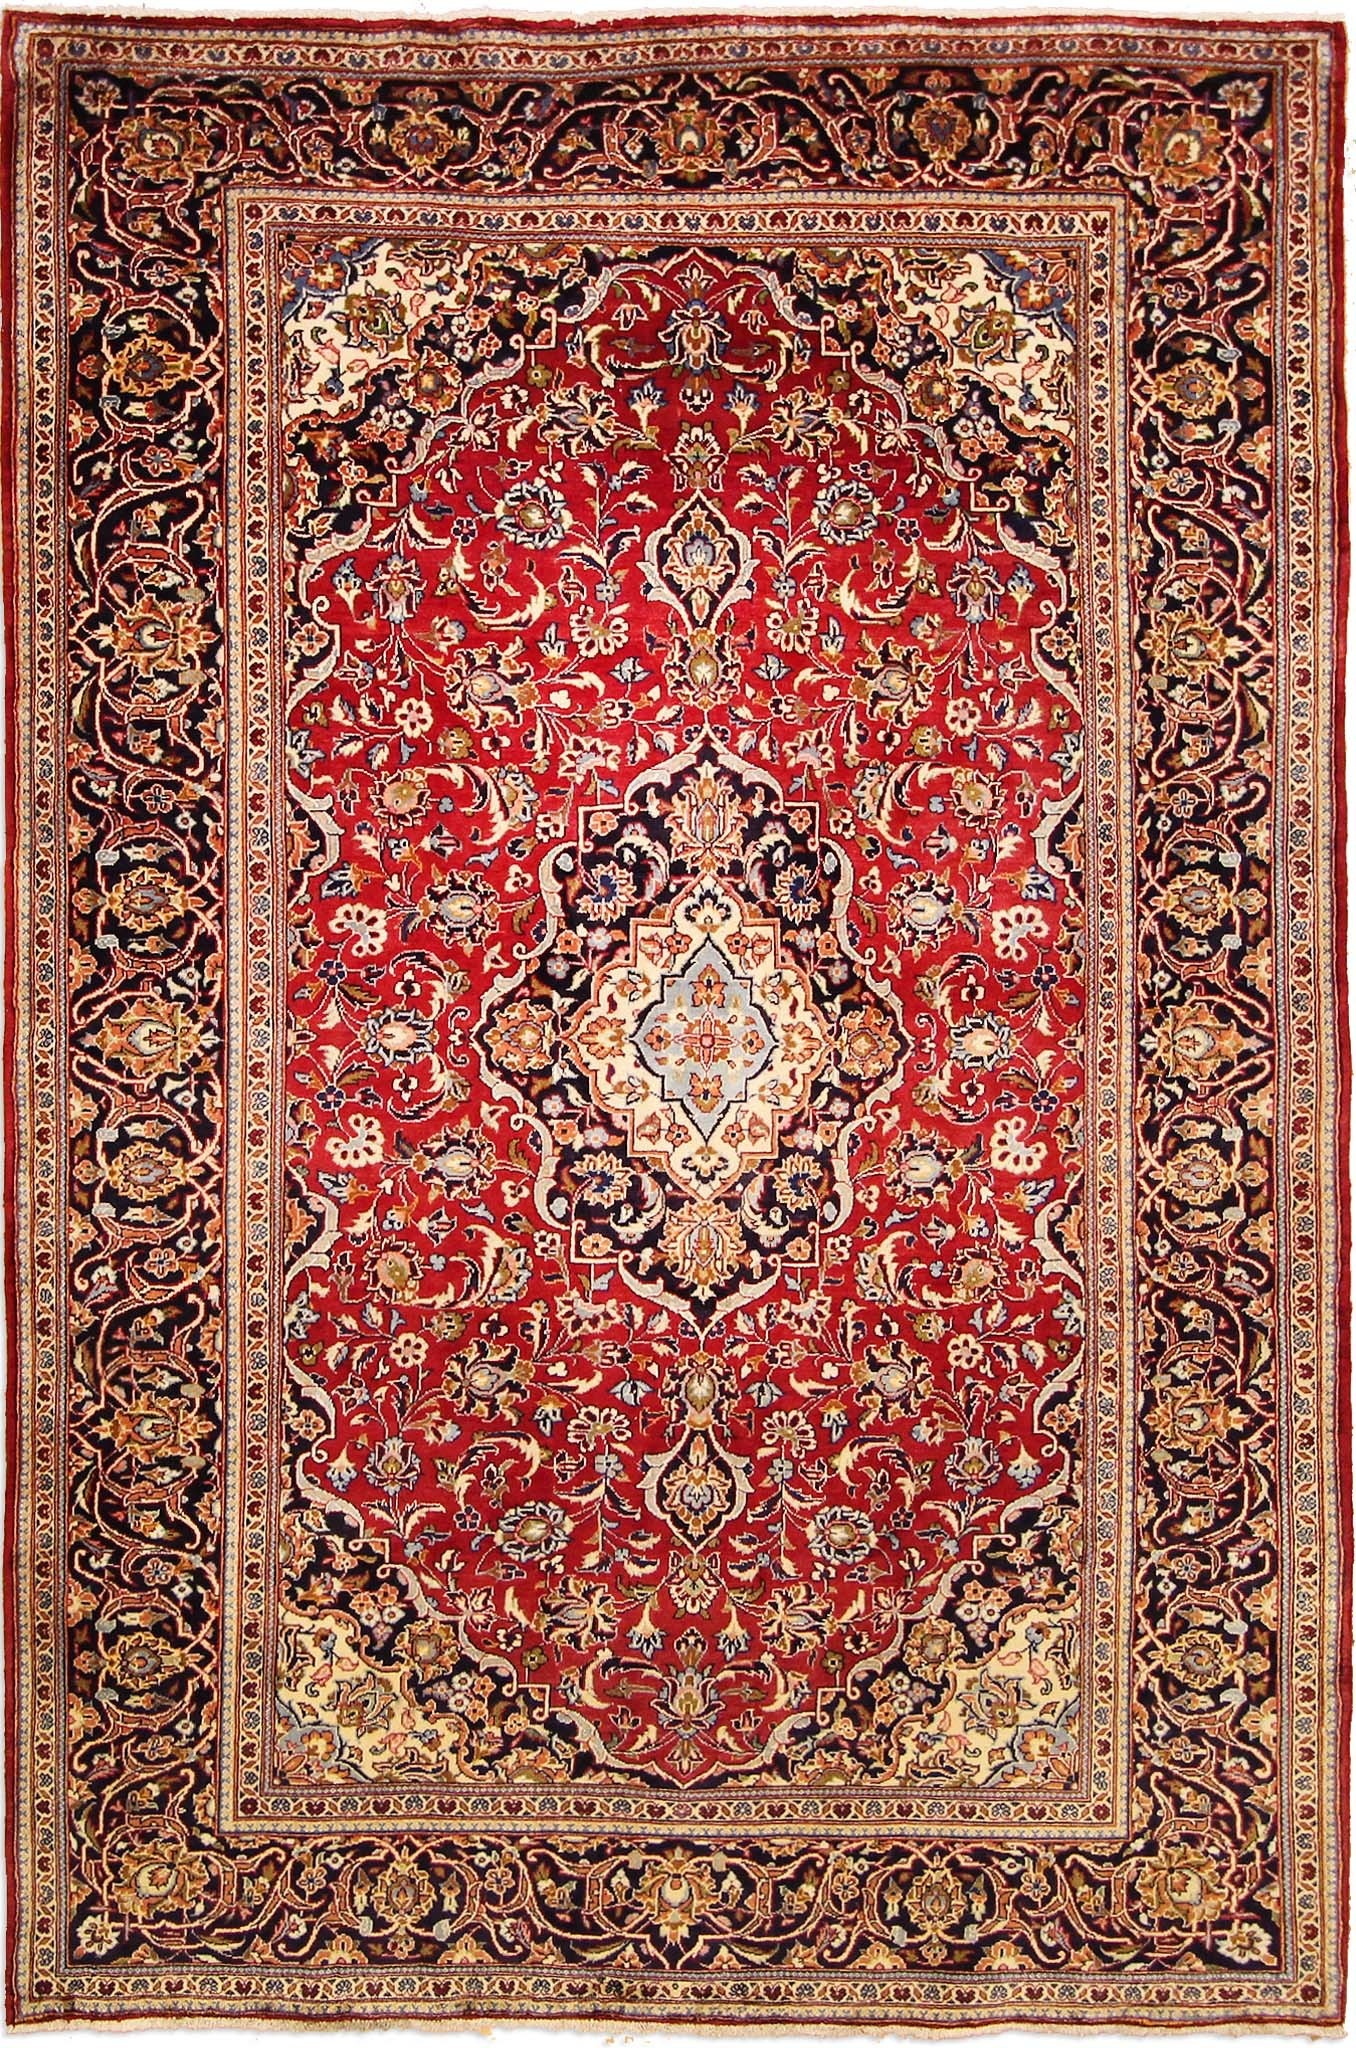 Persian Rugs Dubai Abu Dhabi Amp Handmade Persian Carpet In